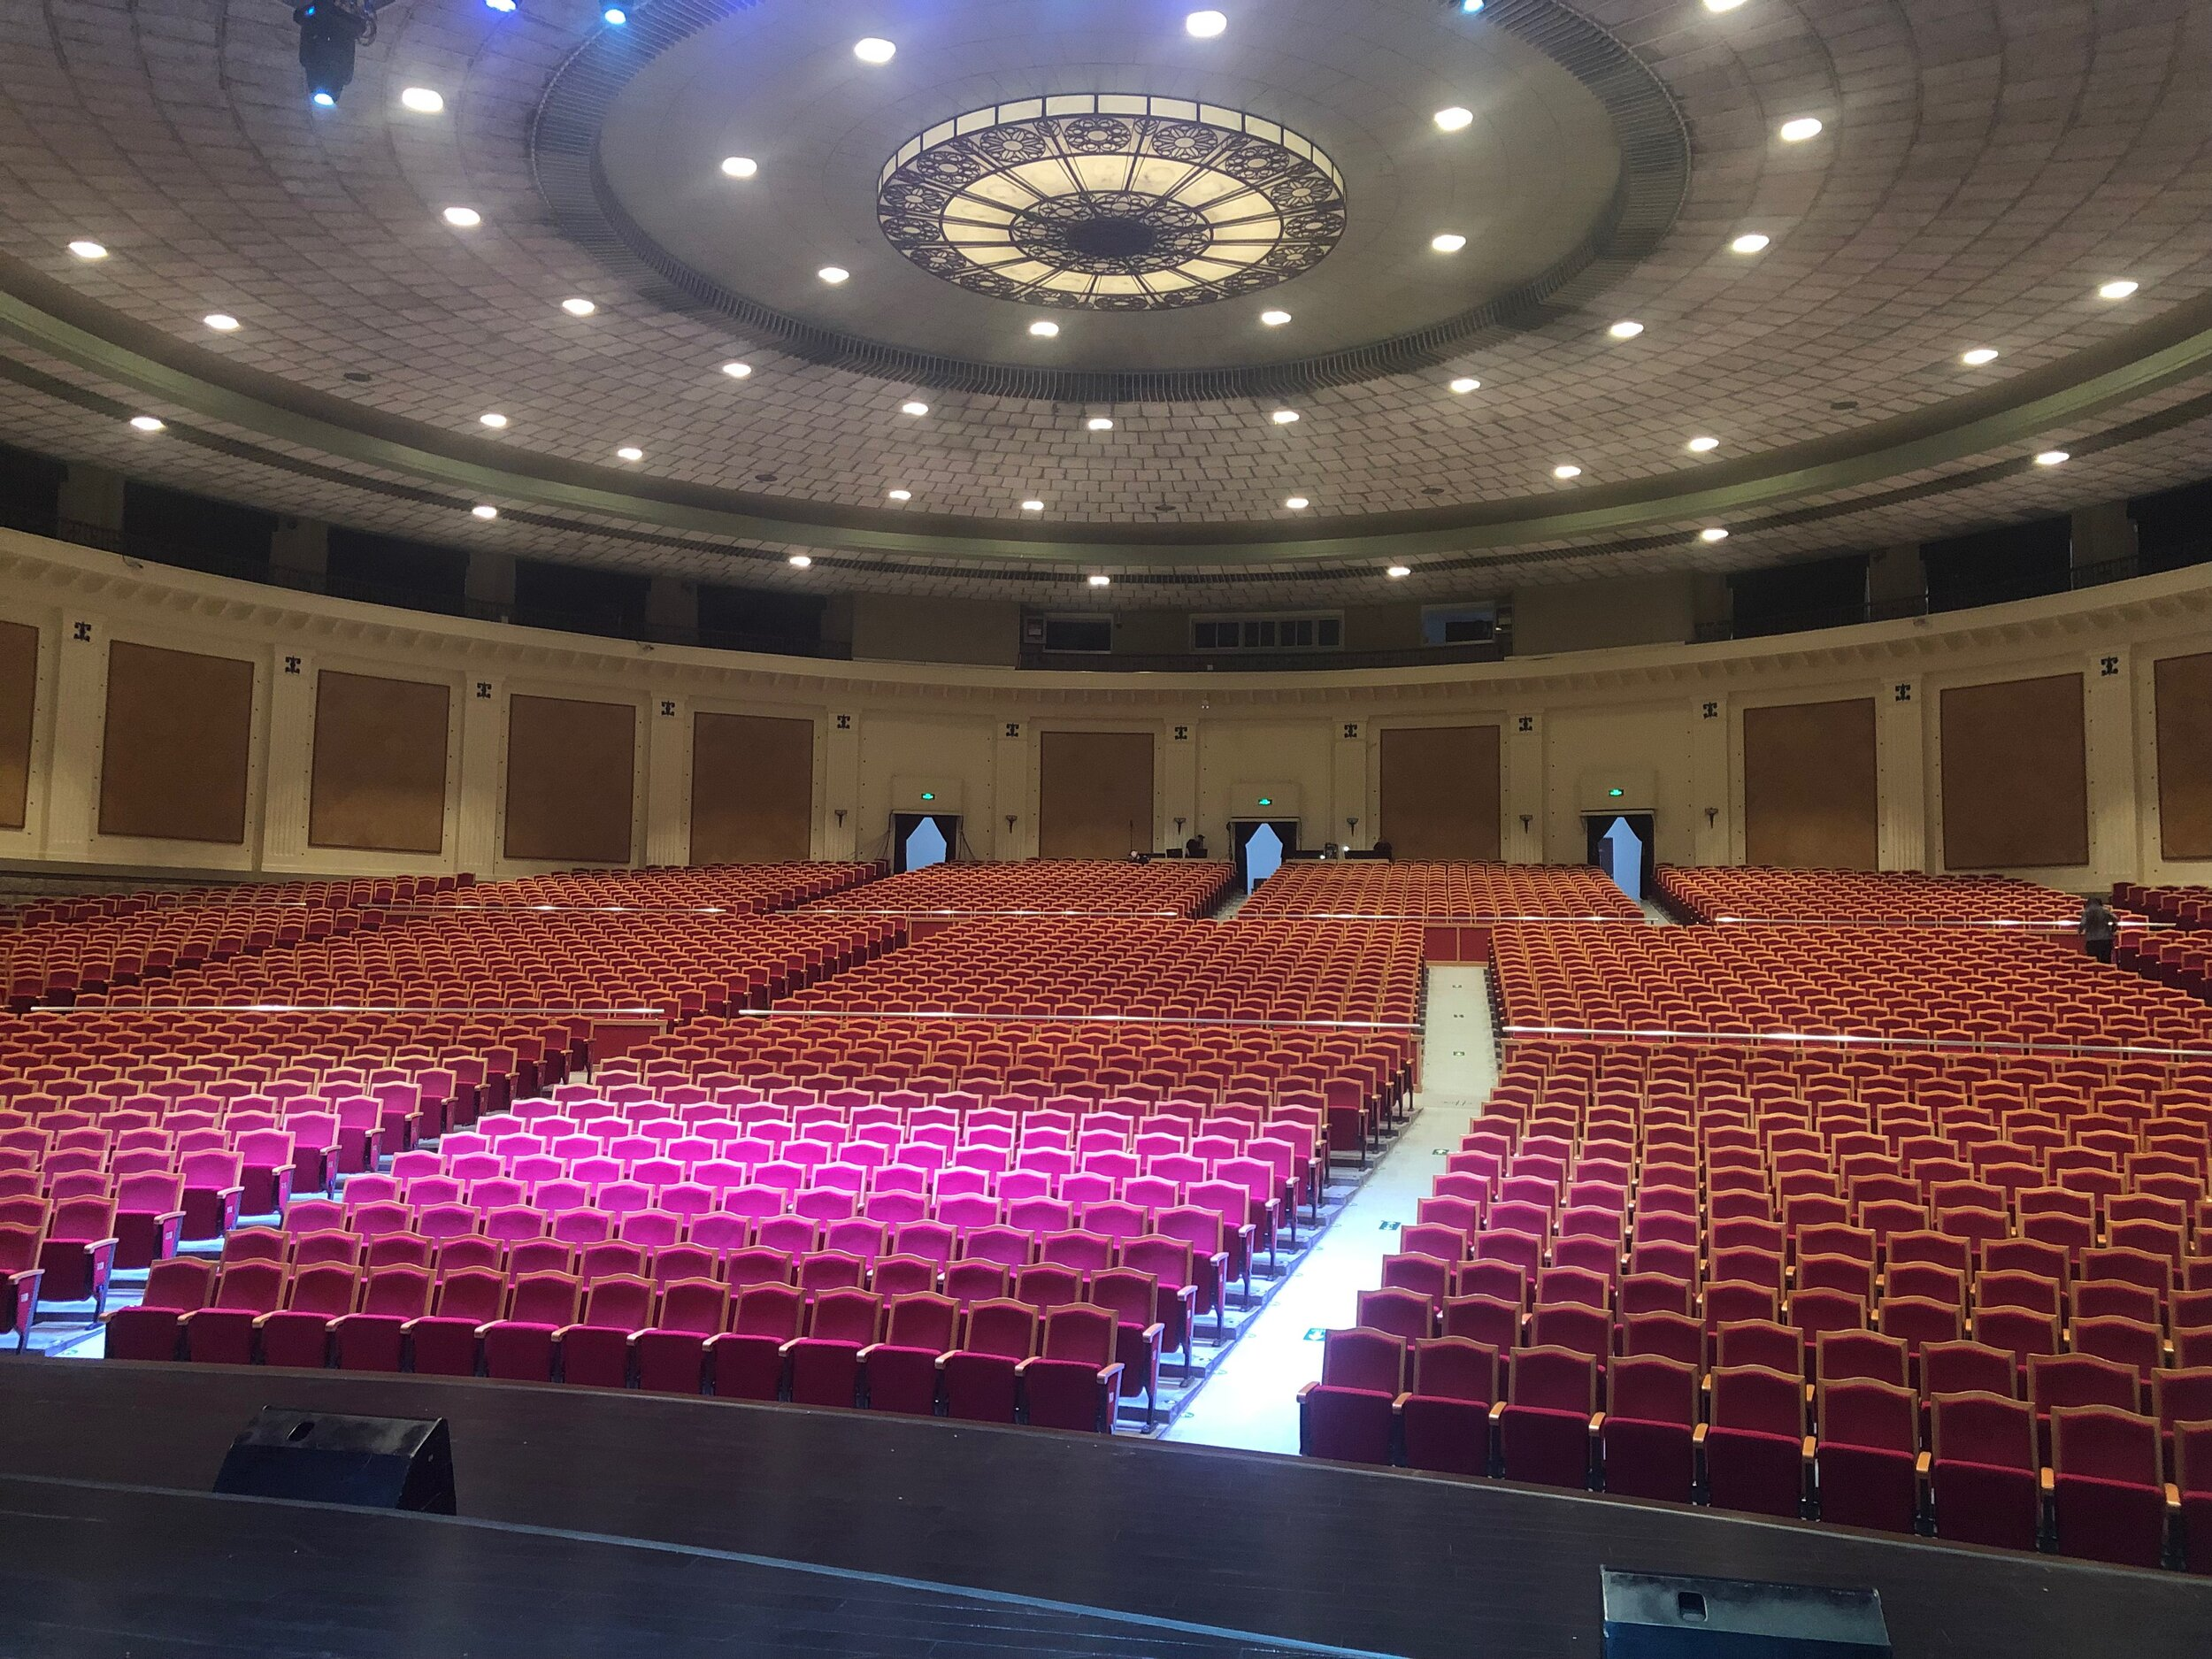 [the view from stage right at the Beijing Exhibition Center, our opening venue]